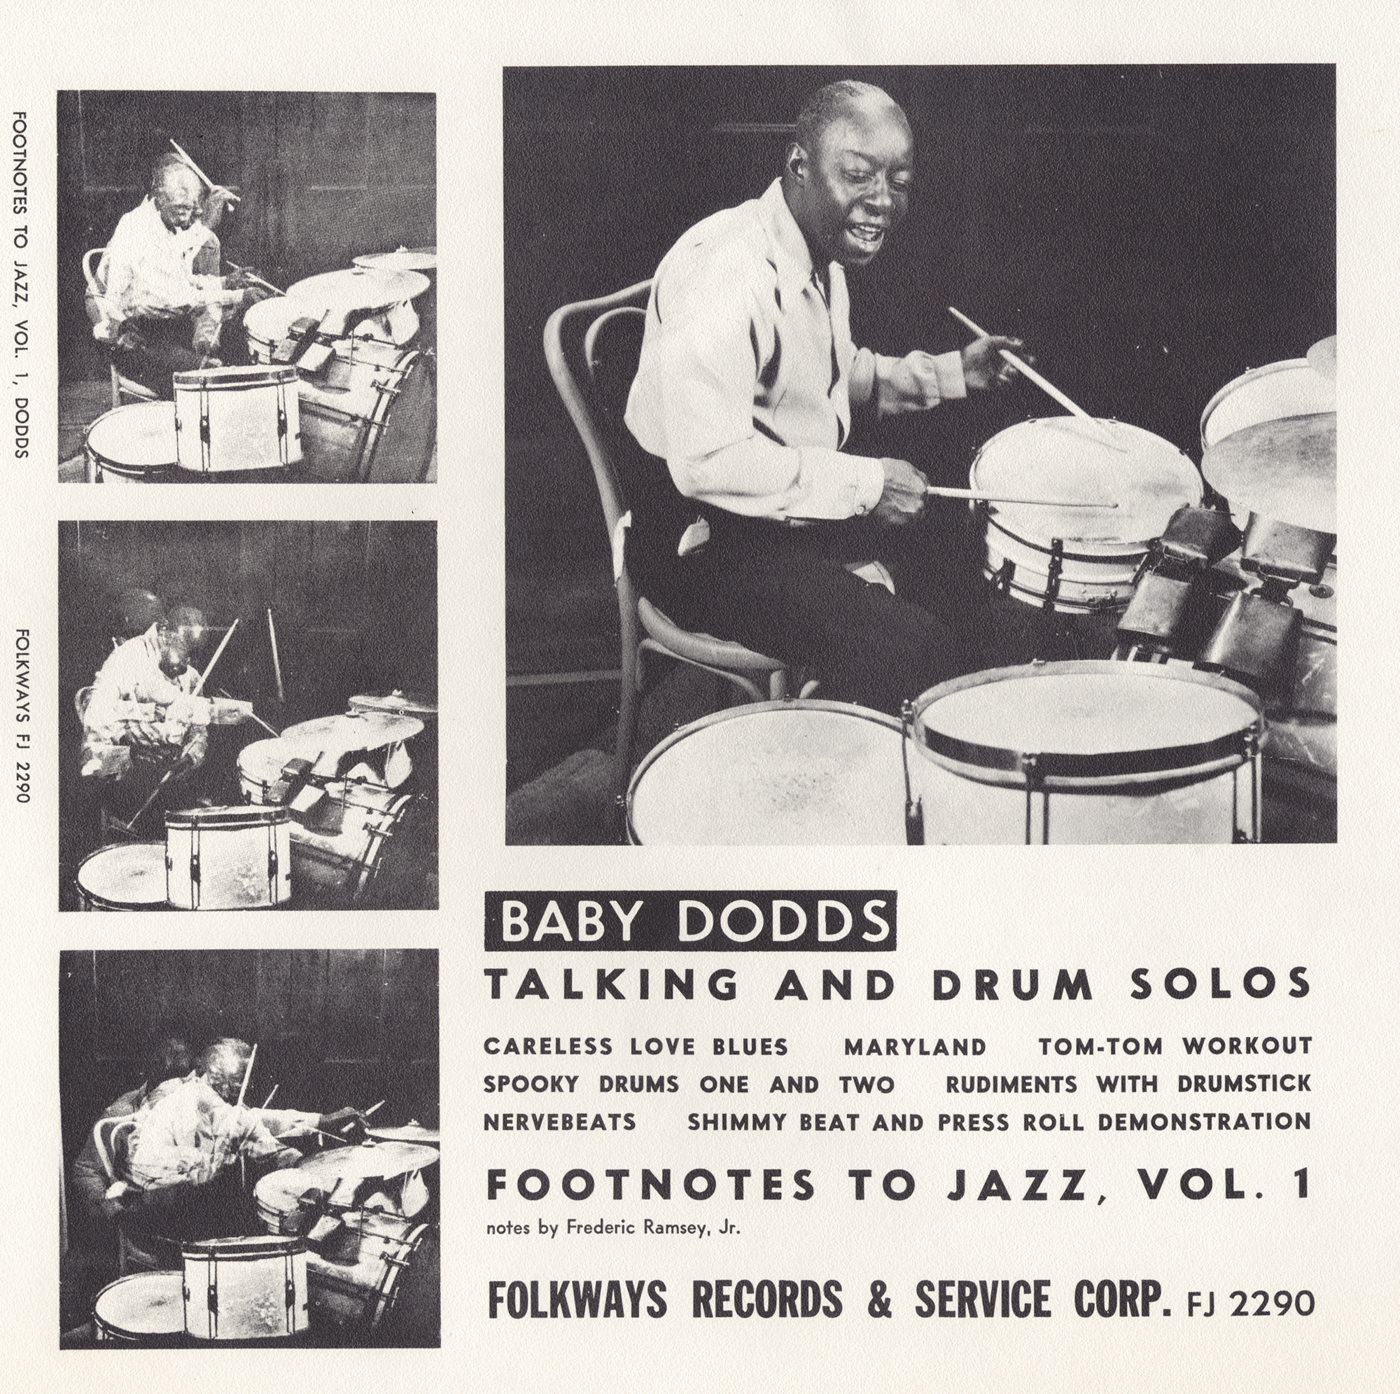 The Birth Of An Icon Learning And Performing Origins 1 Set Drum Band Baby Dodds Talking Solos